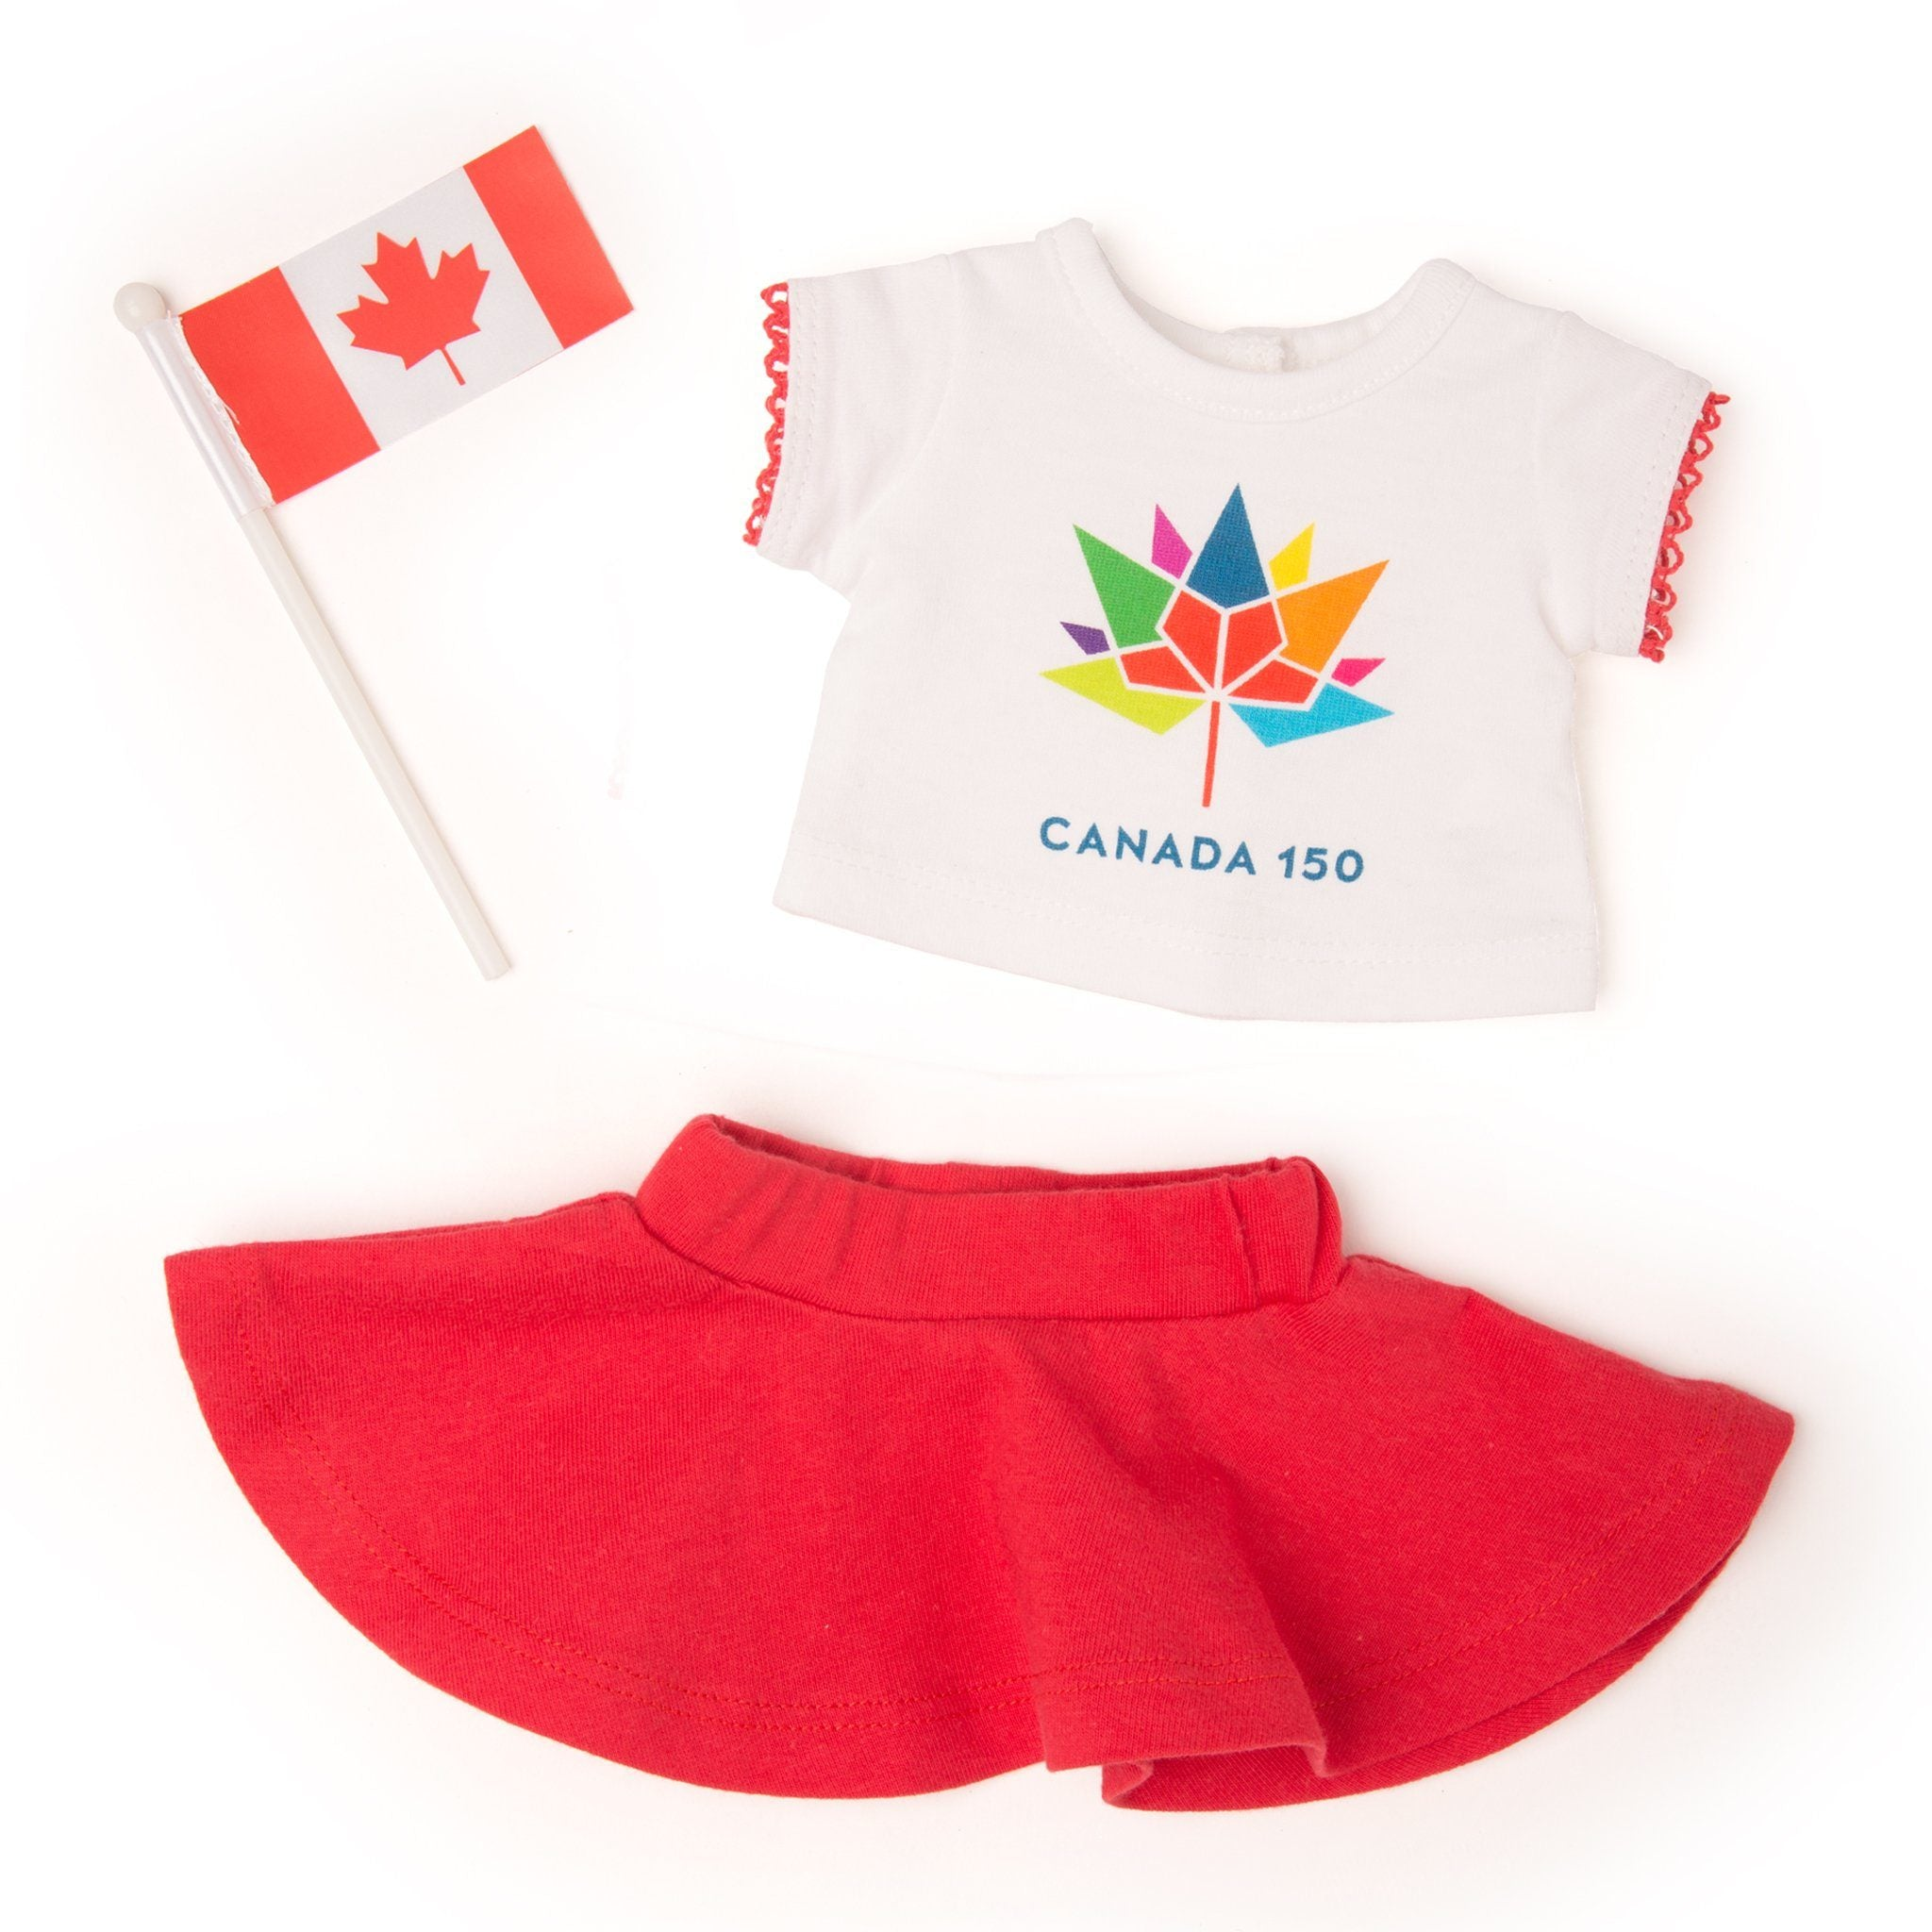 Canada 150 Outfit logo t-shirt, red skirt, Canada flag fits all 18 inch dolls.